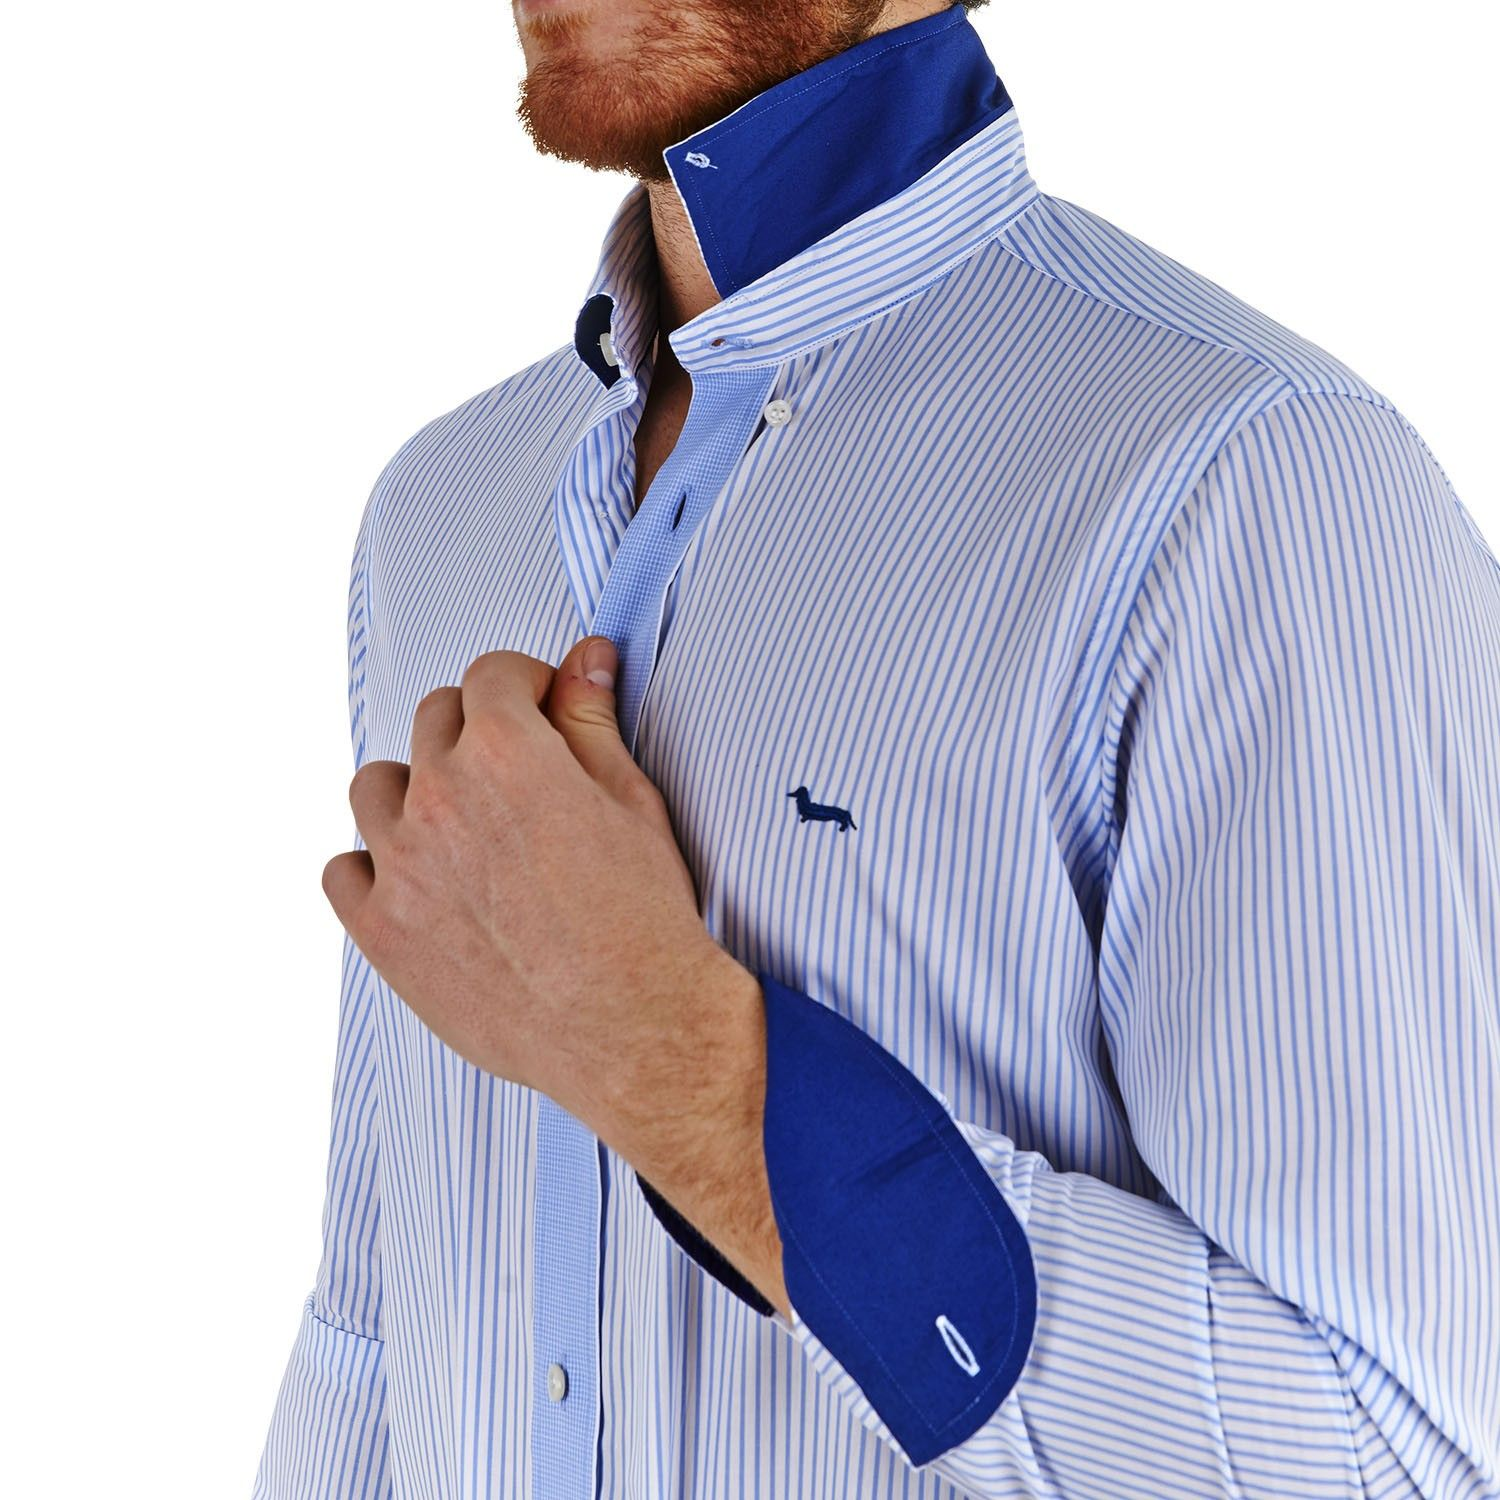 66f8b8ab Striped shirt - Sky-blue/White - Harmont & Blaine Online Store ...